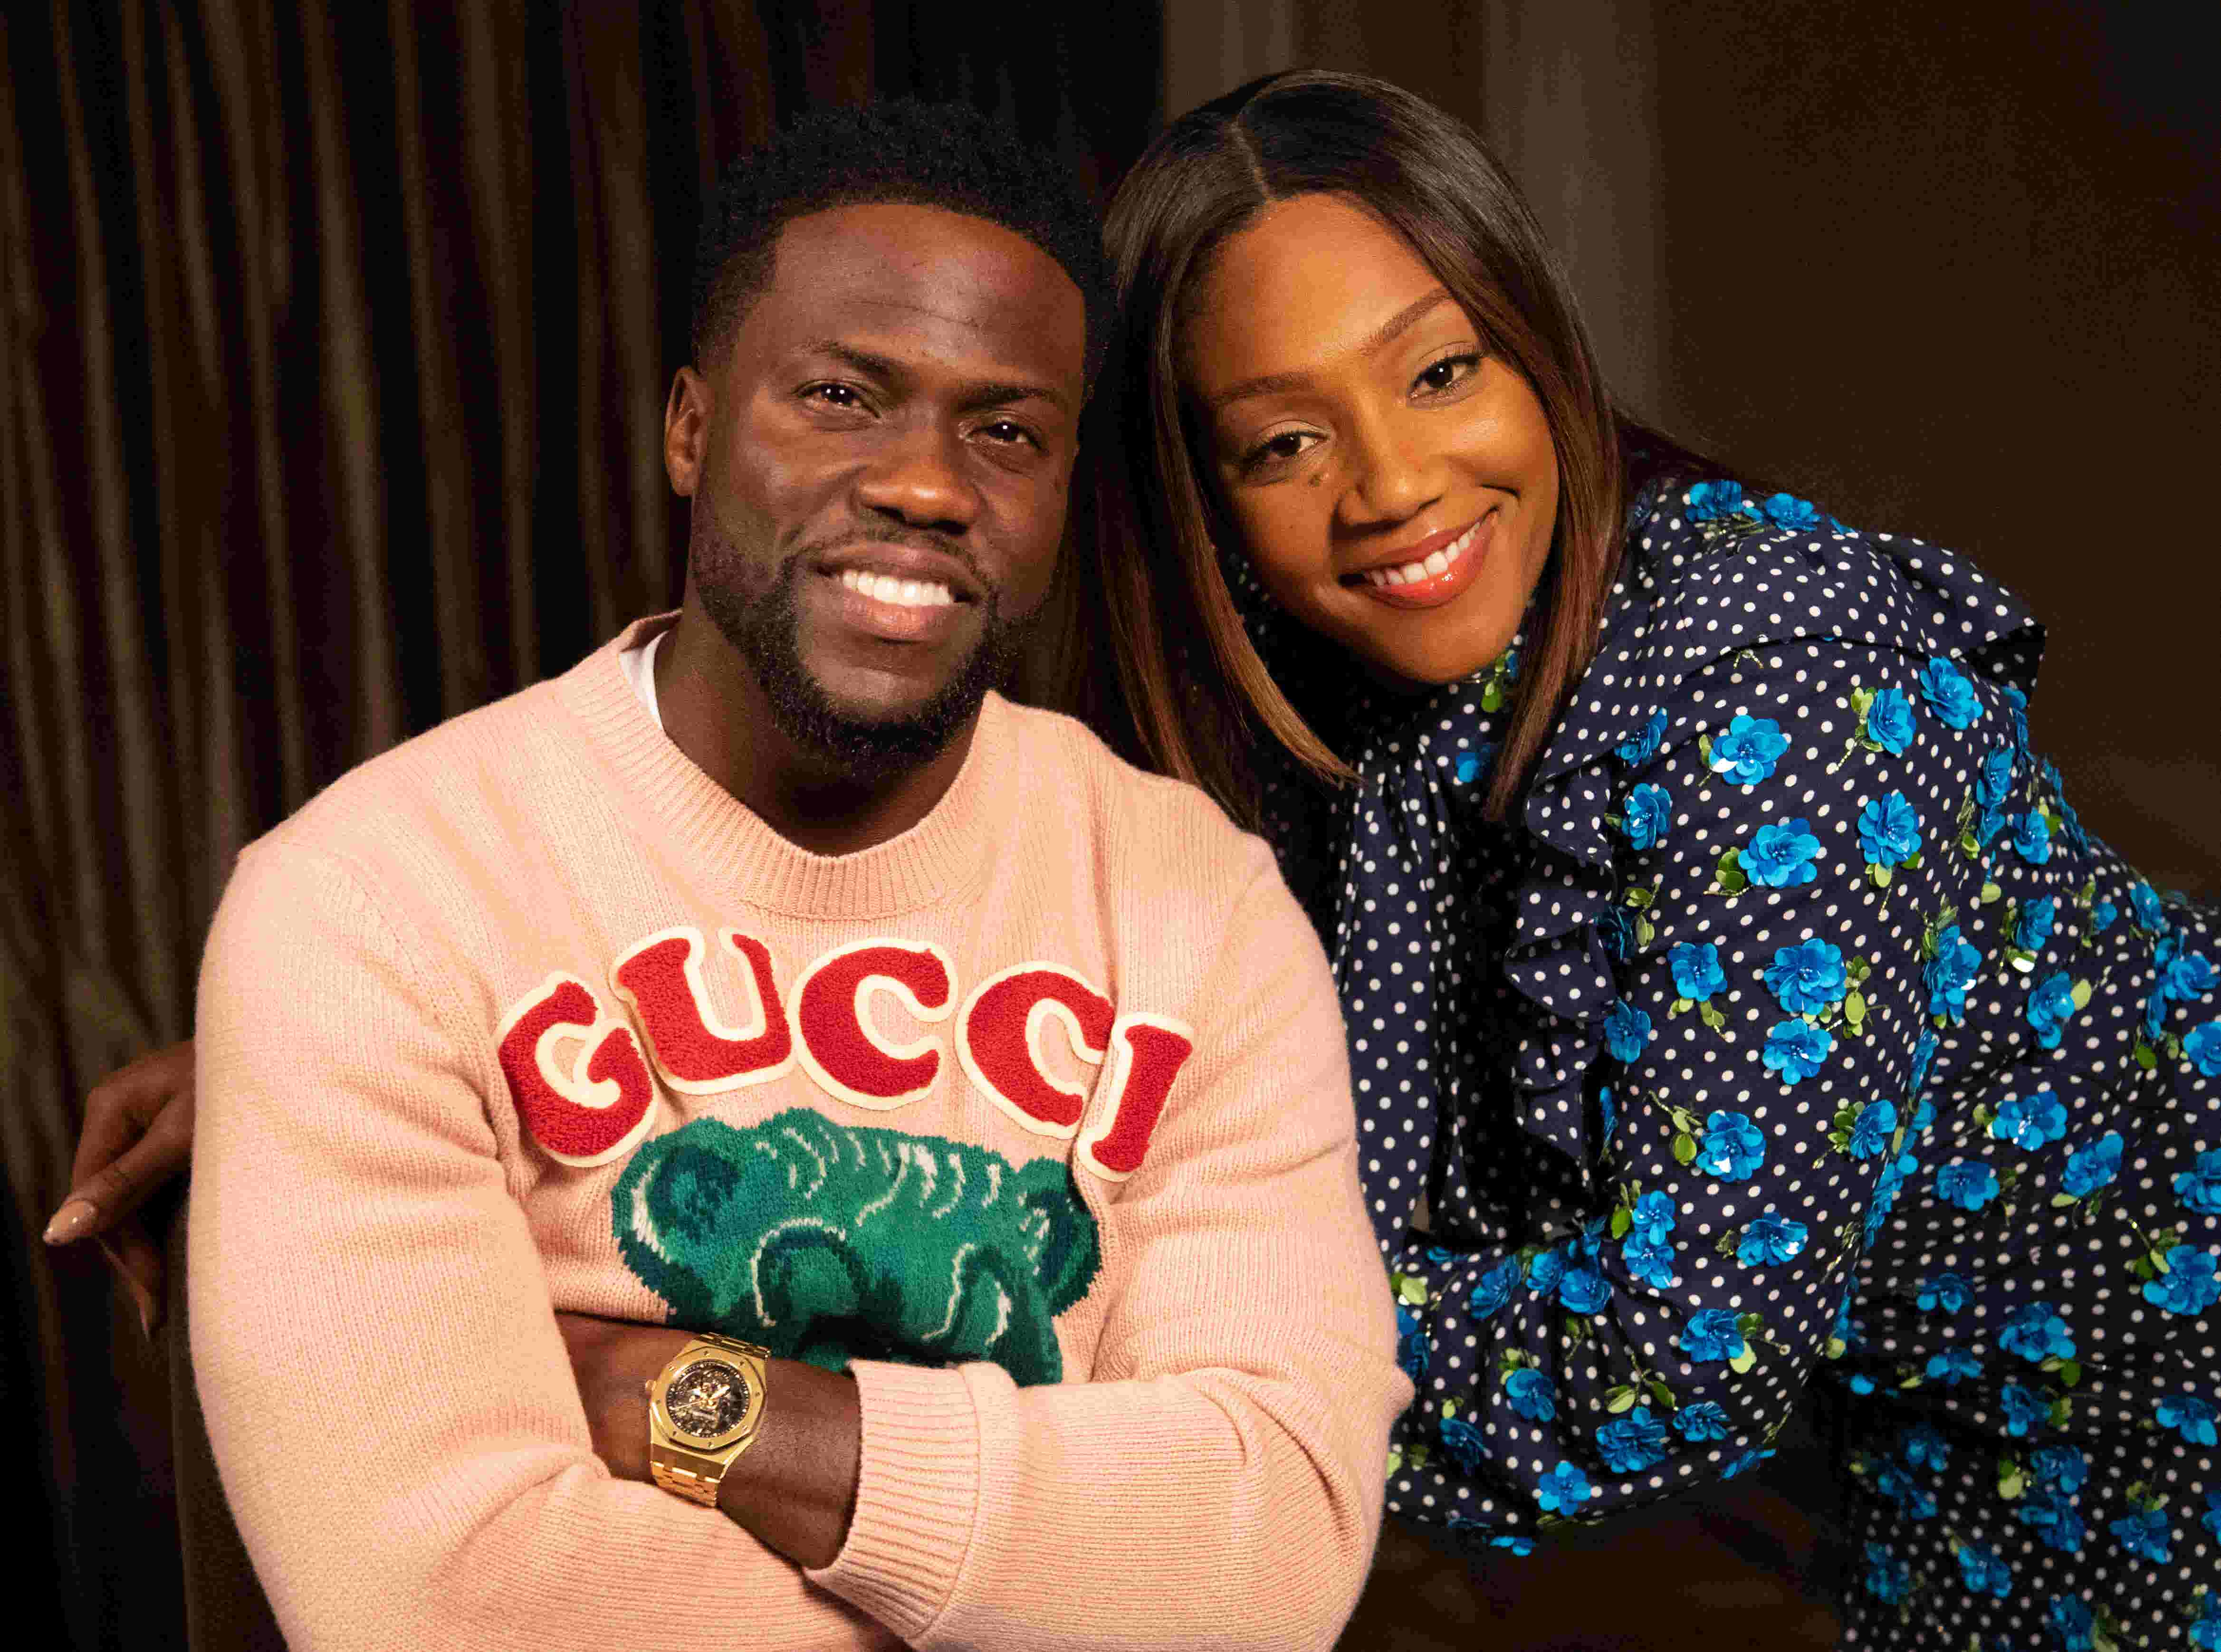 1a8432c278a21 Tiffany Haddish and Kevin Hart of 'Night School' take GED questions